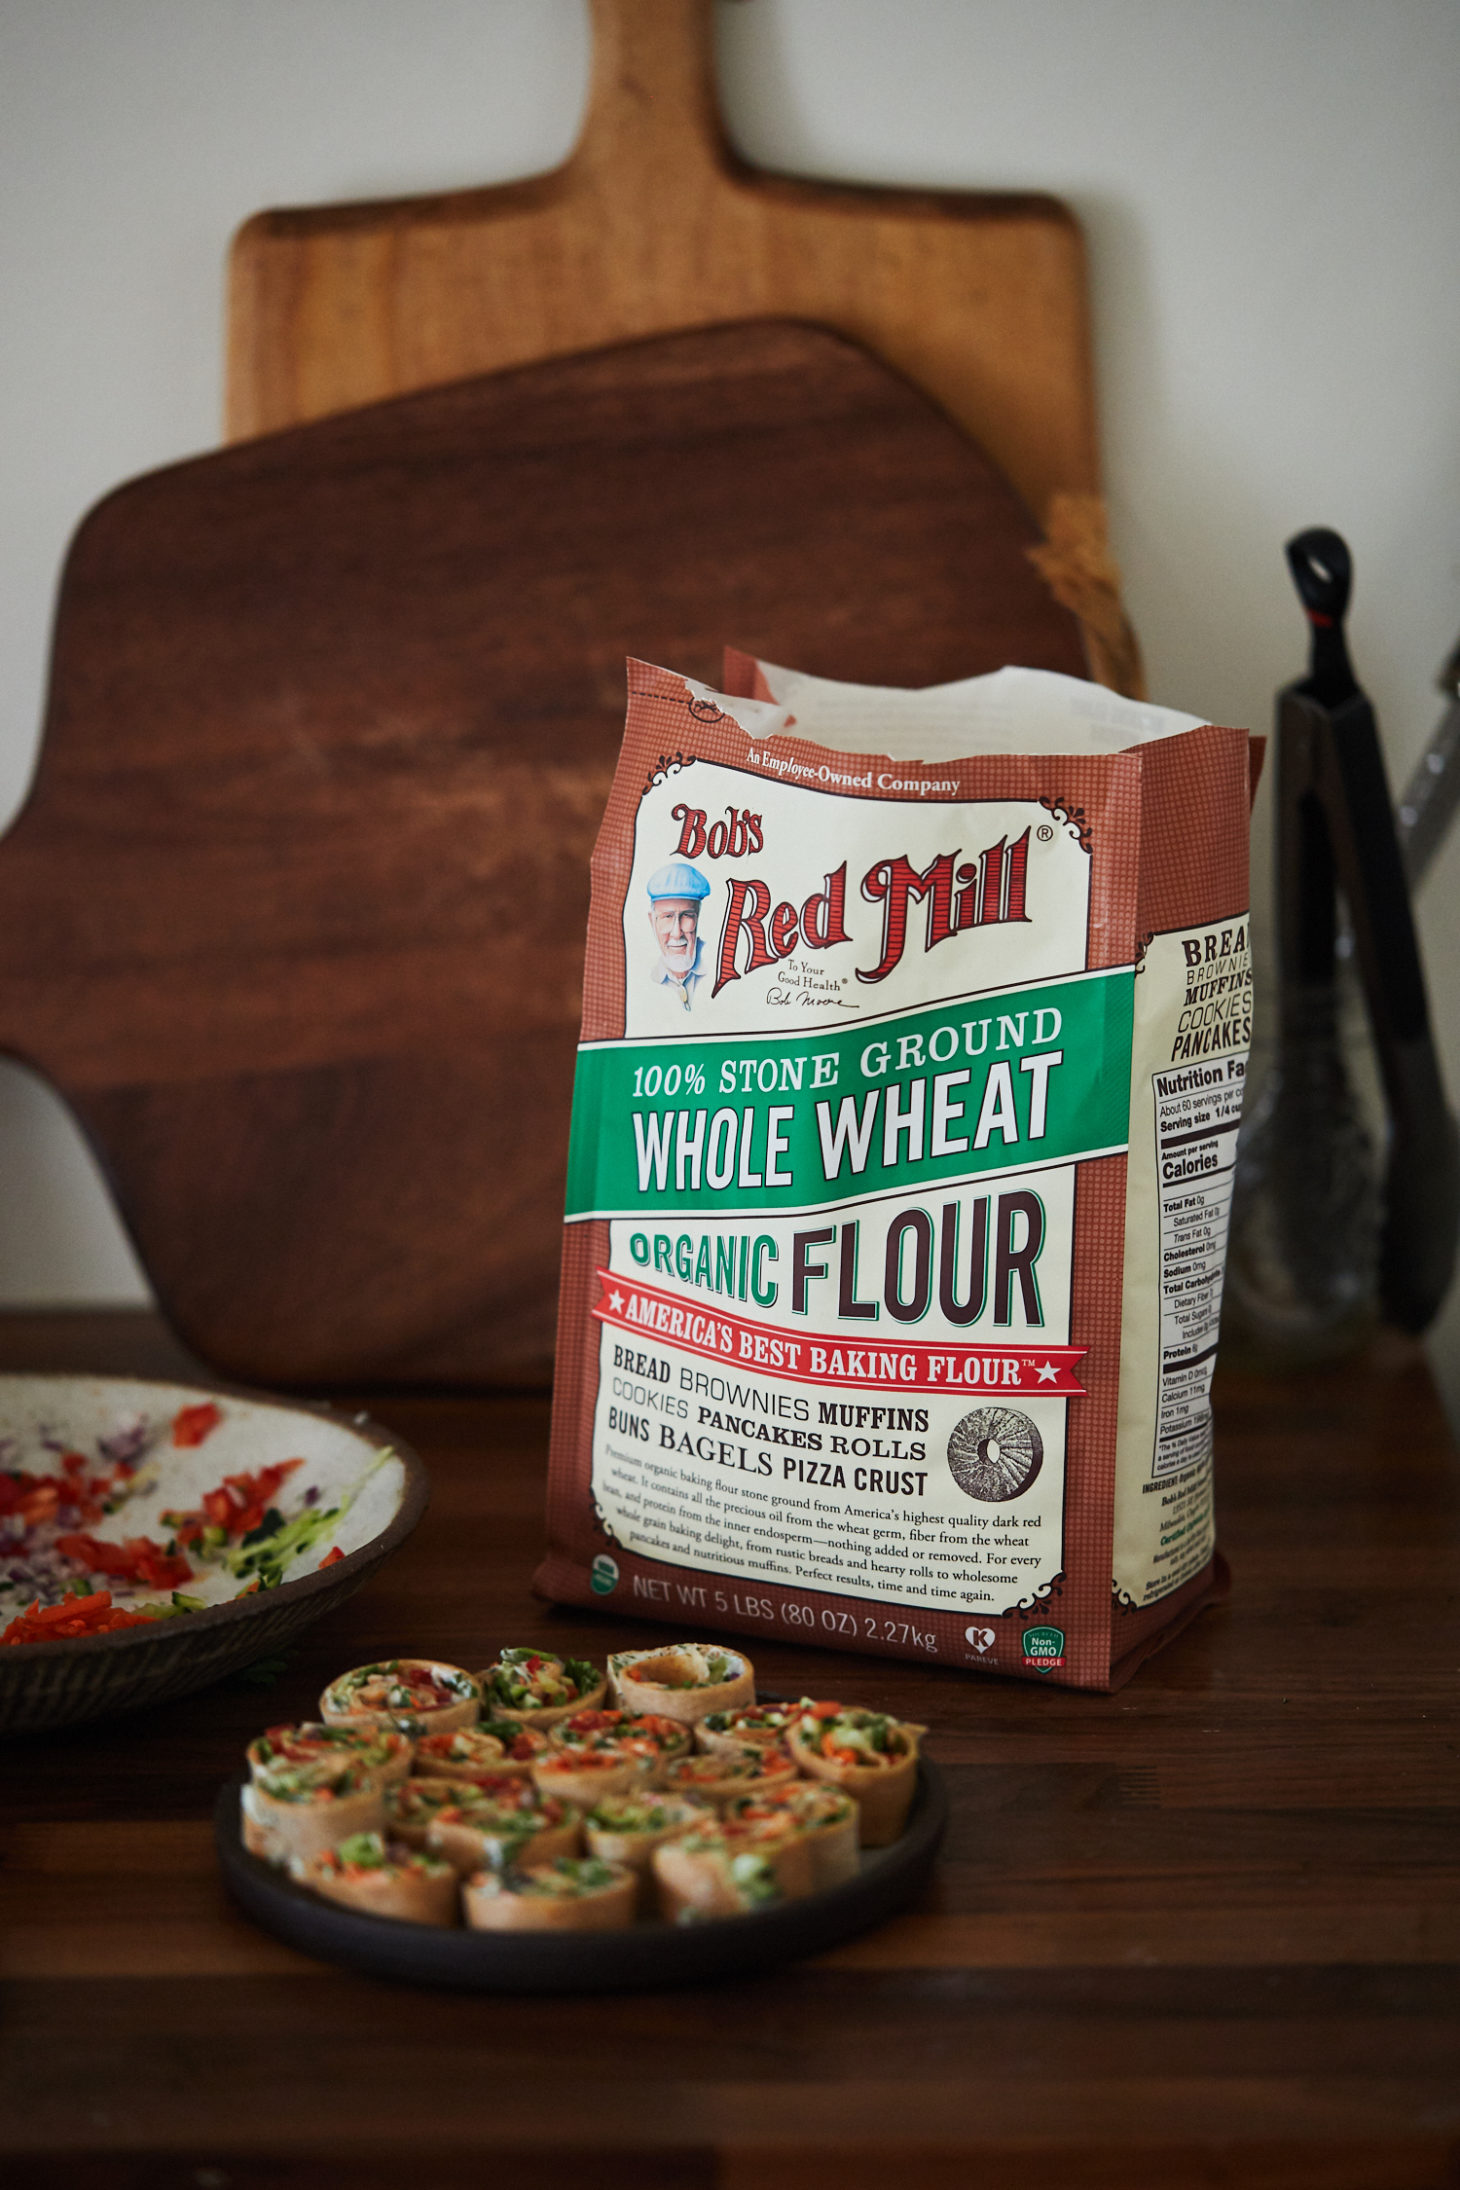 A straight-on photograph of a bag of bob's red mill whole wheat flour.